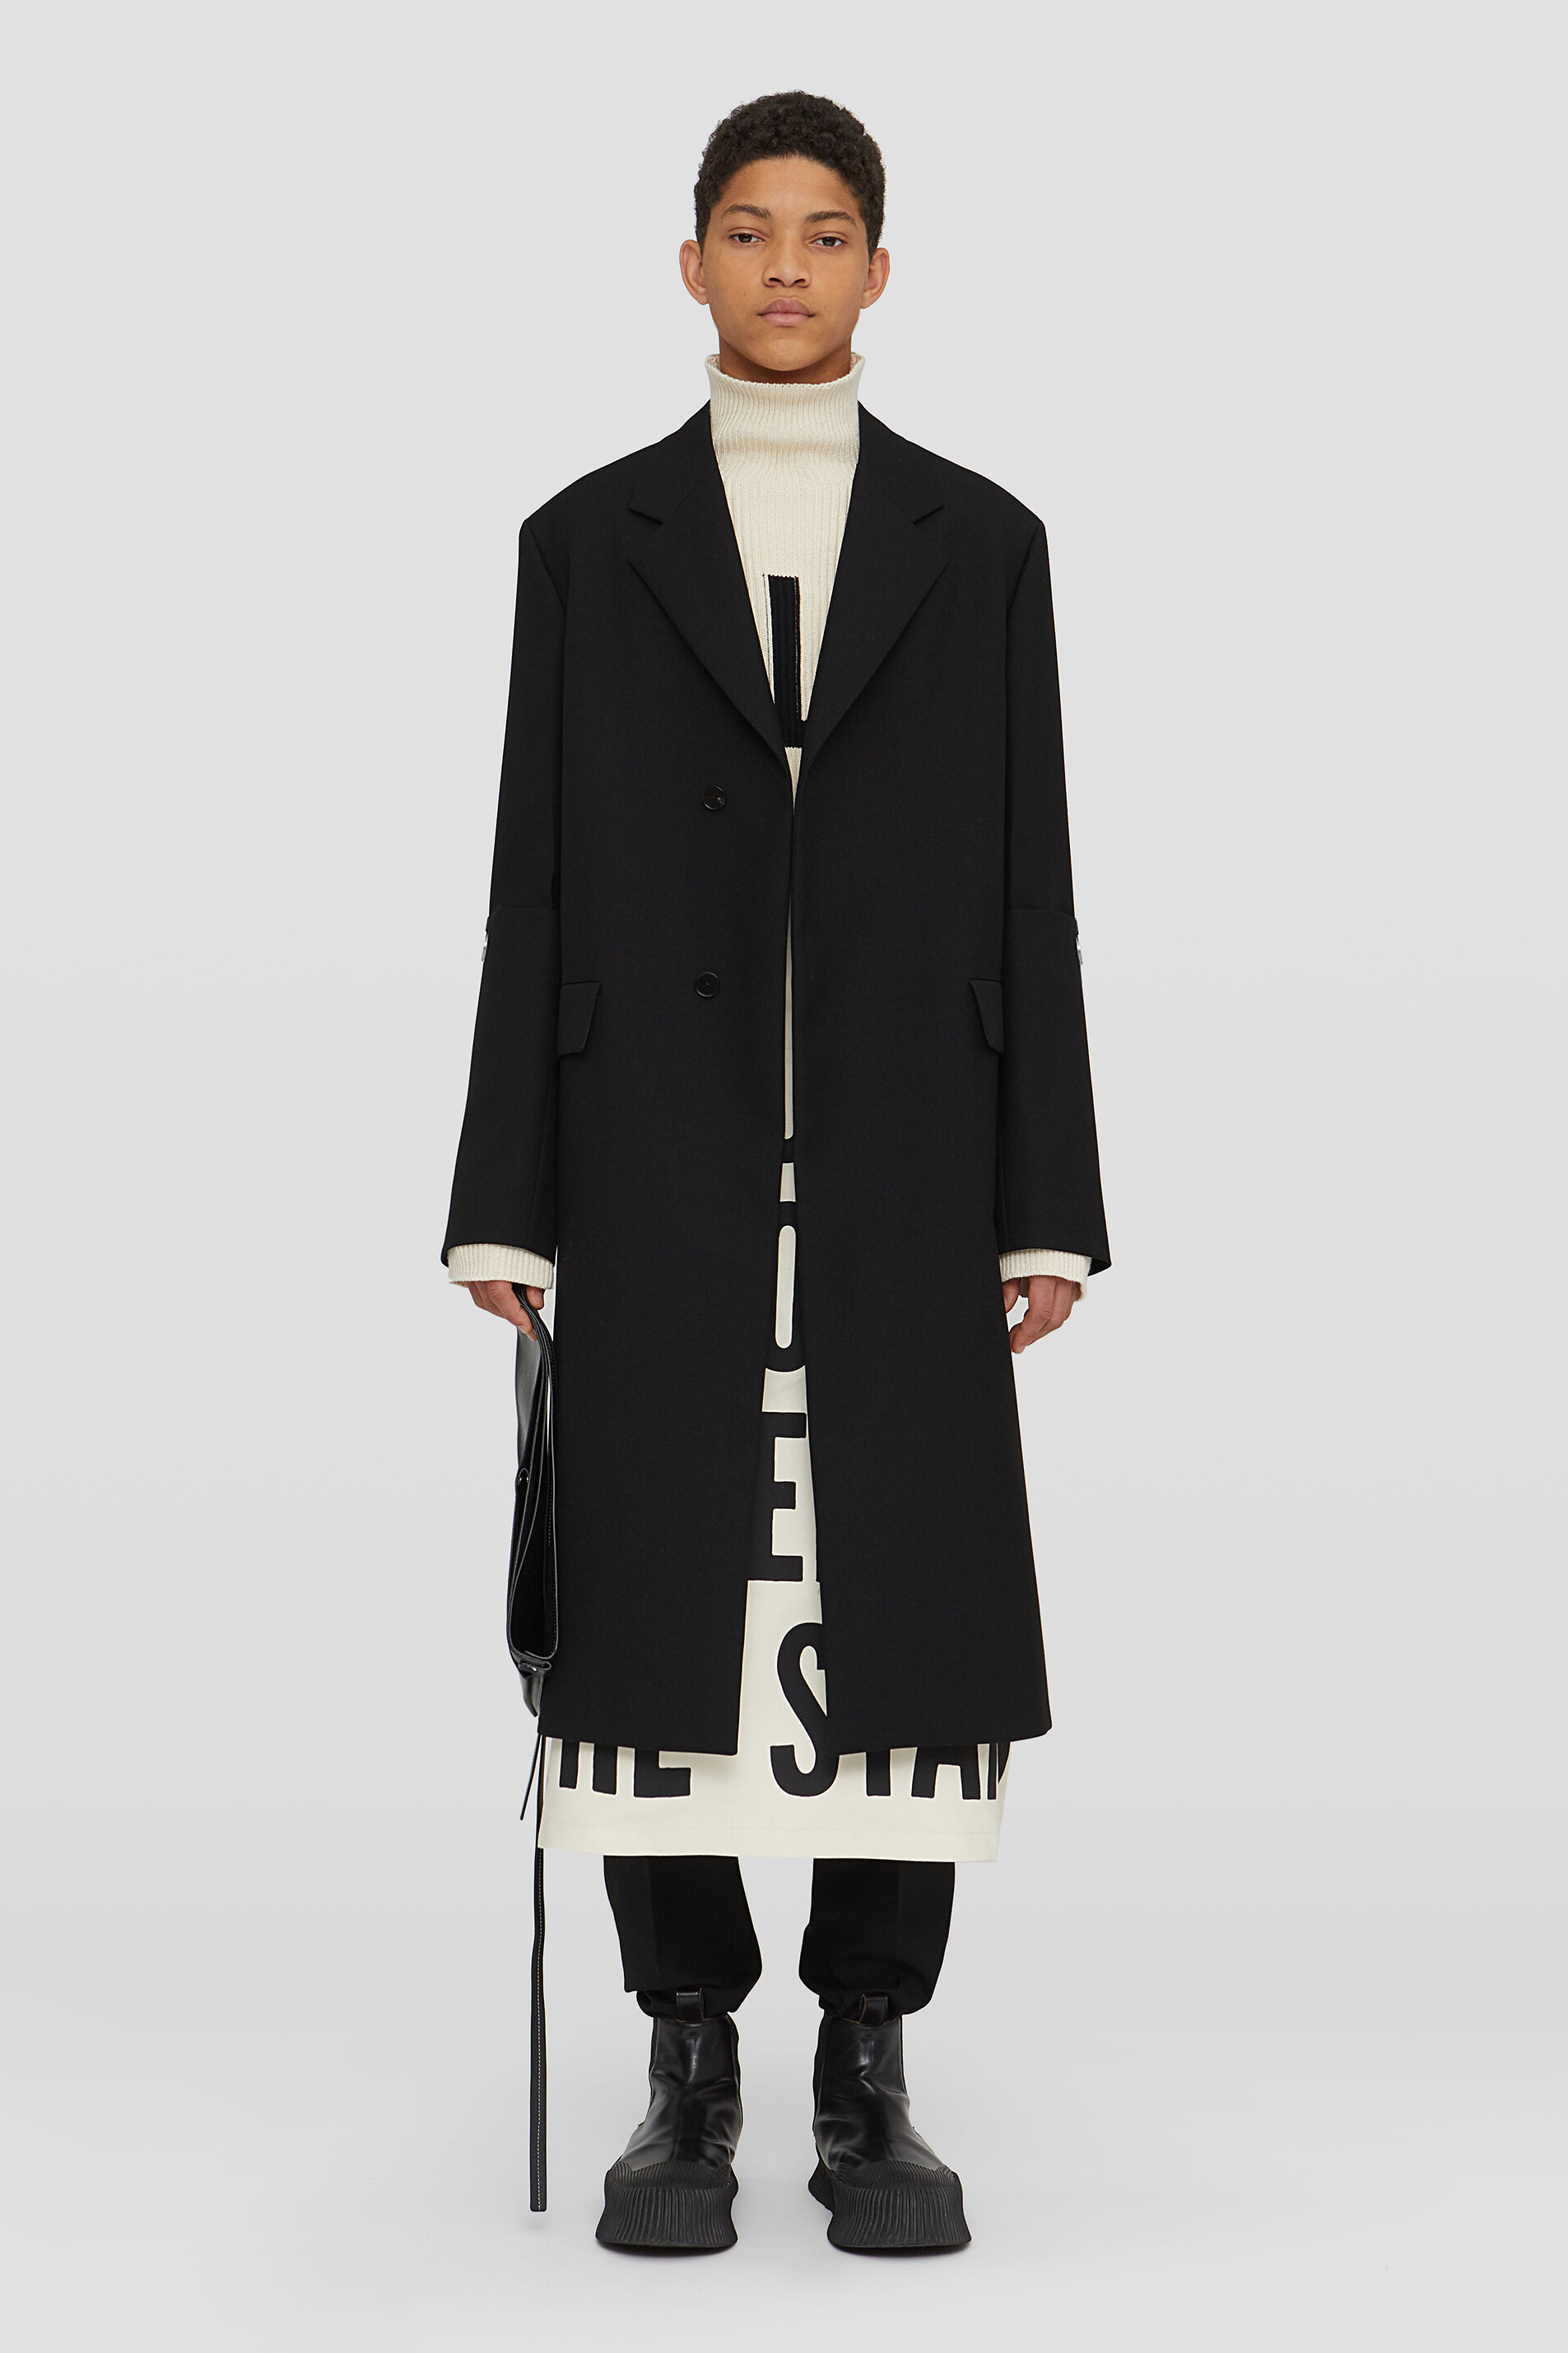 Tailored Coat, black, large